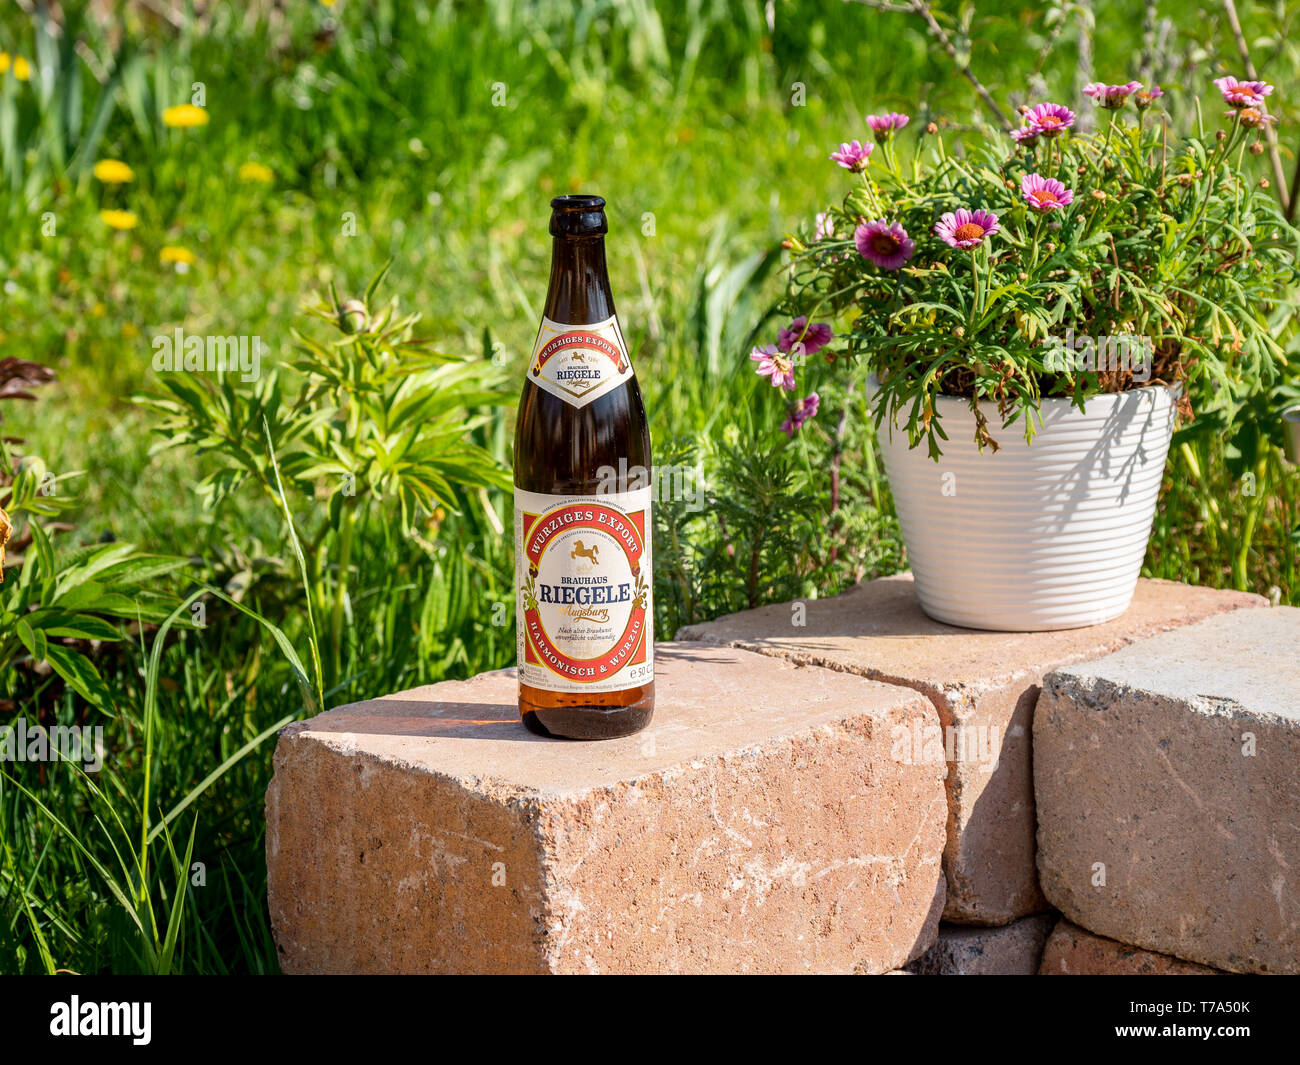 Augsburg Germany May 3 2019 A Bottle Of Riegele Beer On A Stone Wall With Flowers And Gras In The Background Stock Photo Alamy